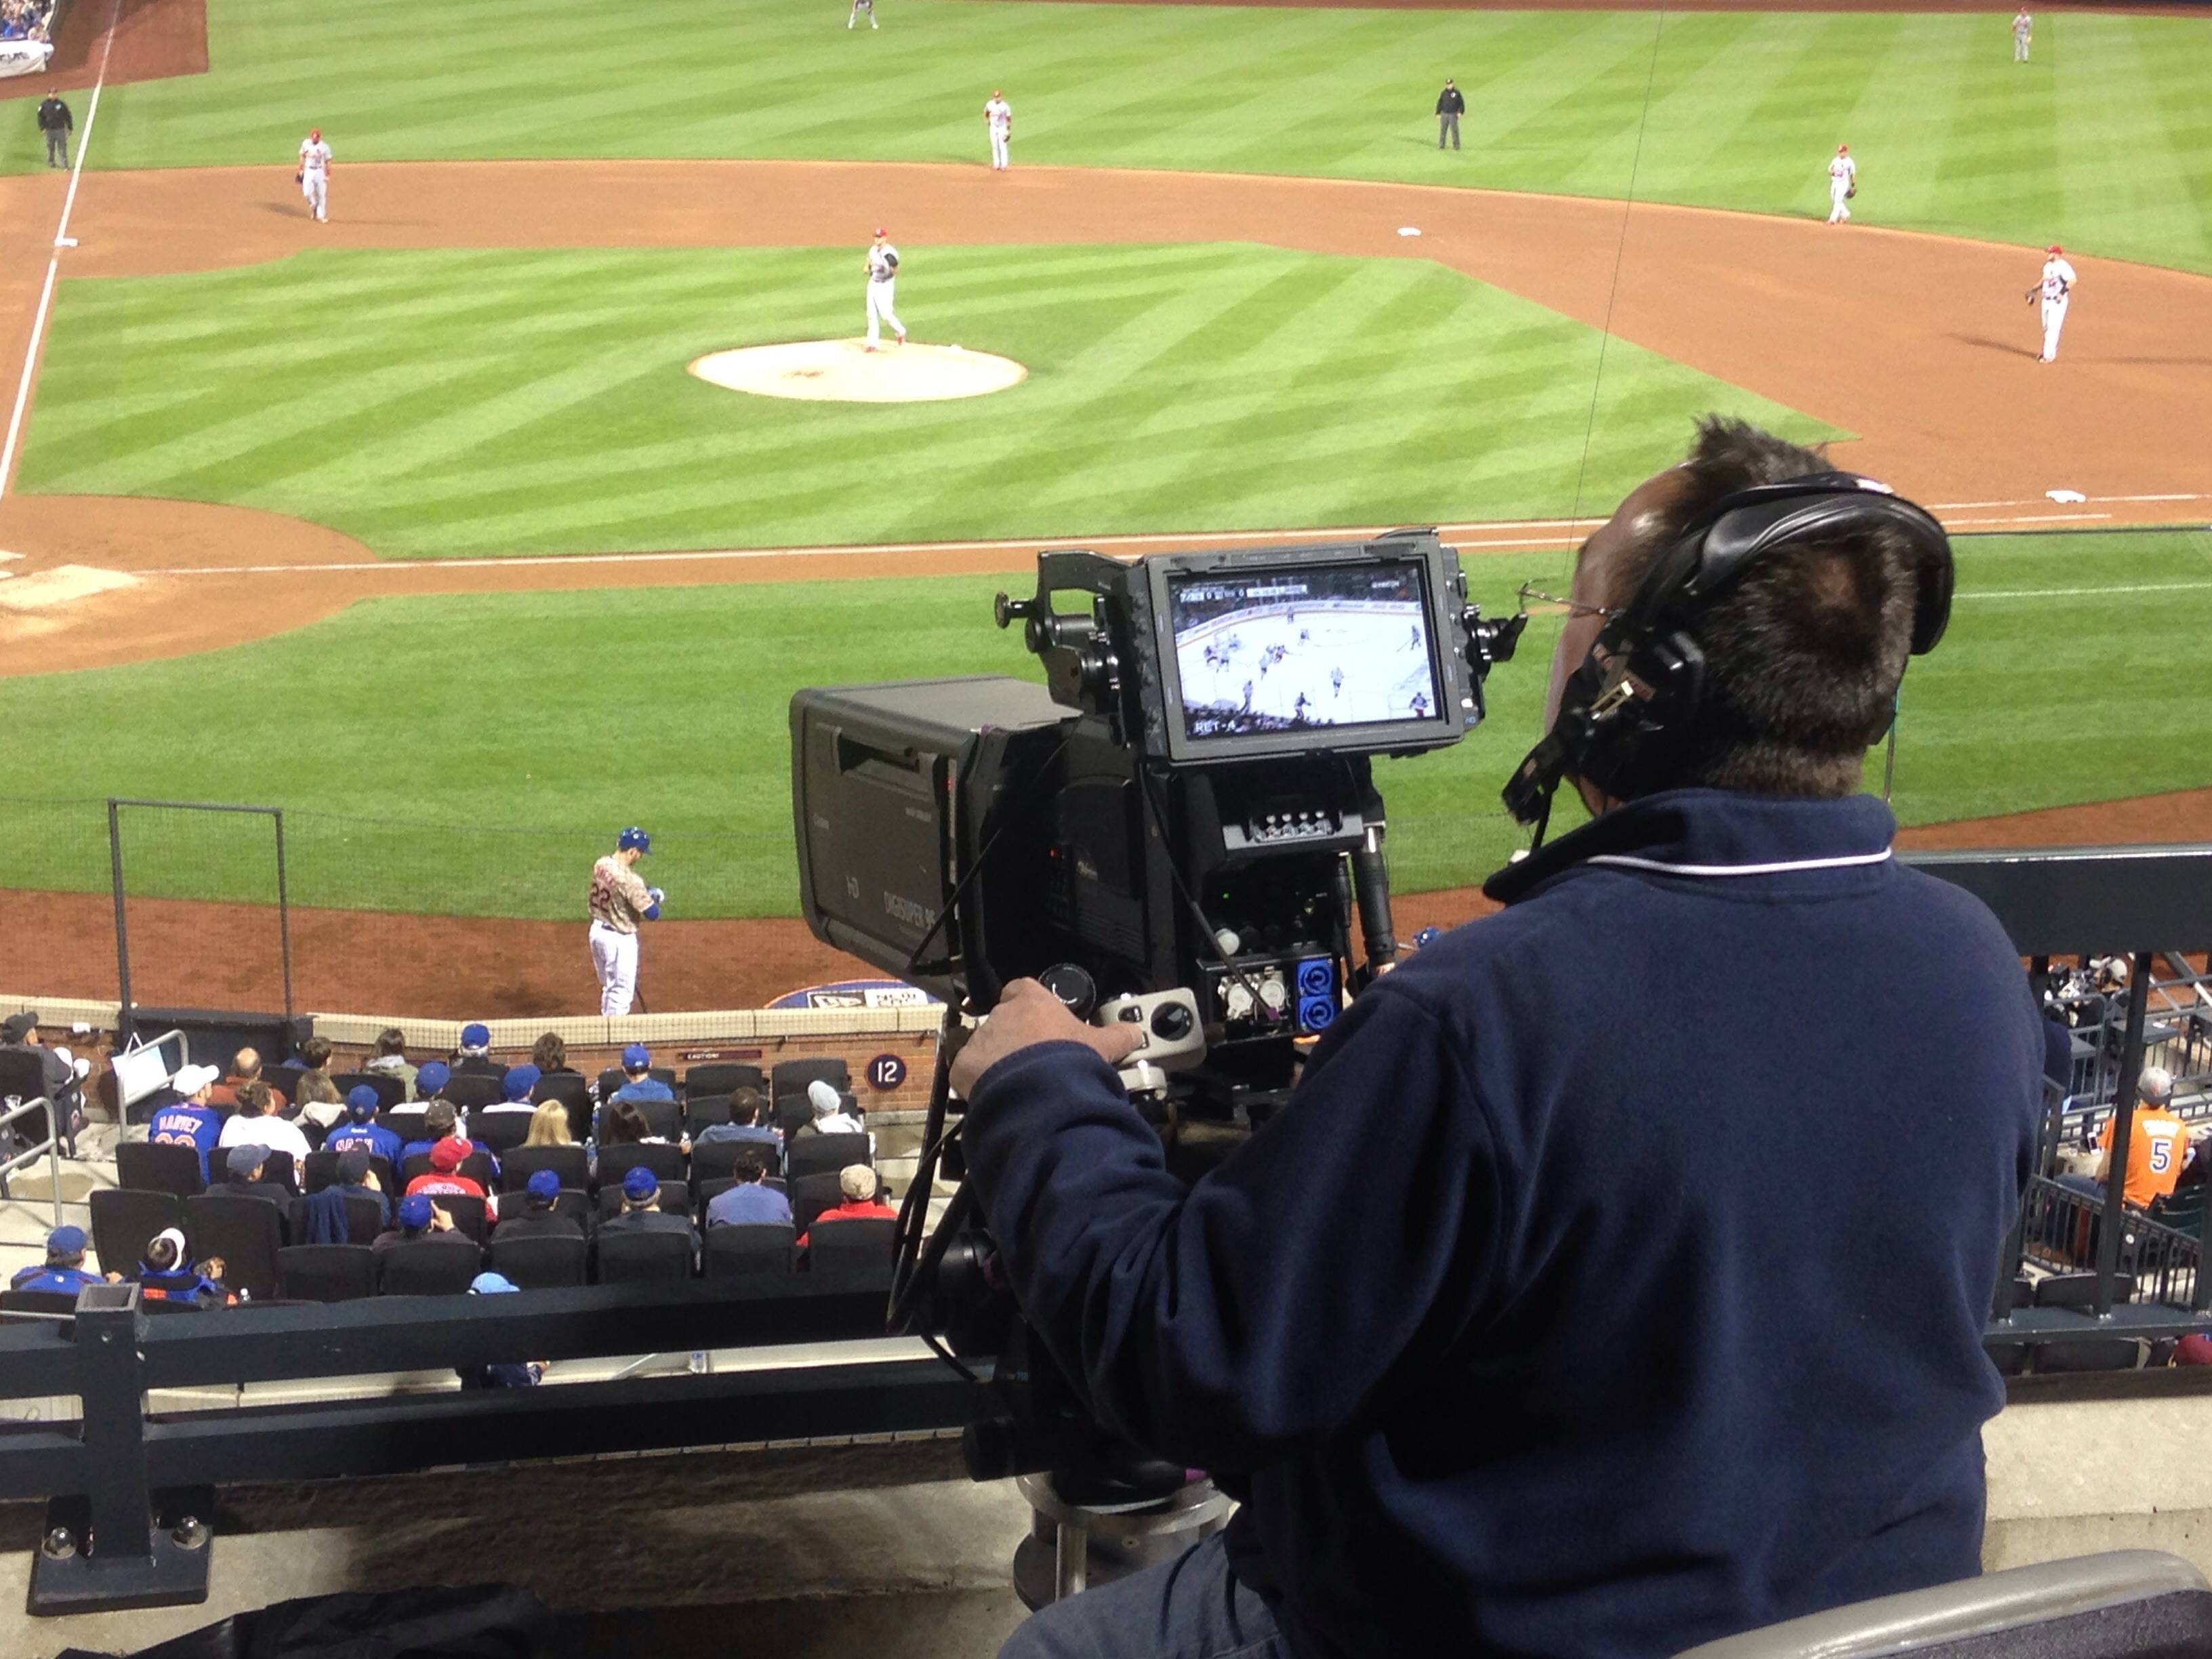 Extreme focus at the Met game last night